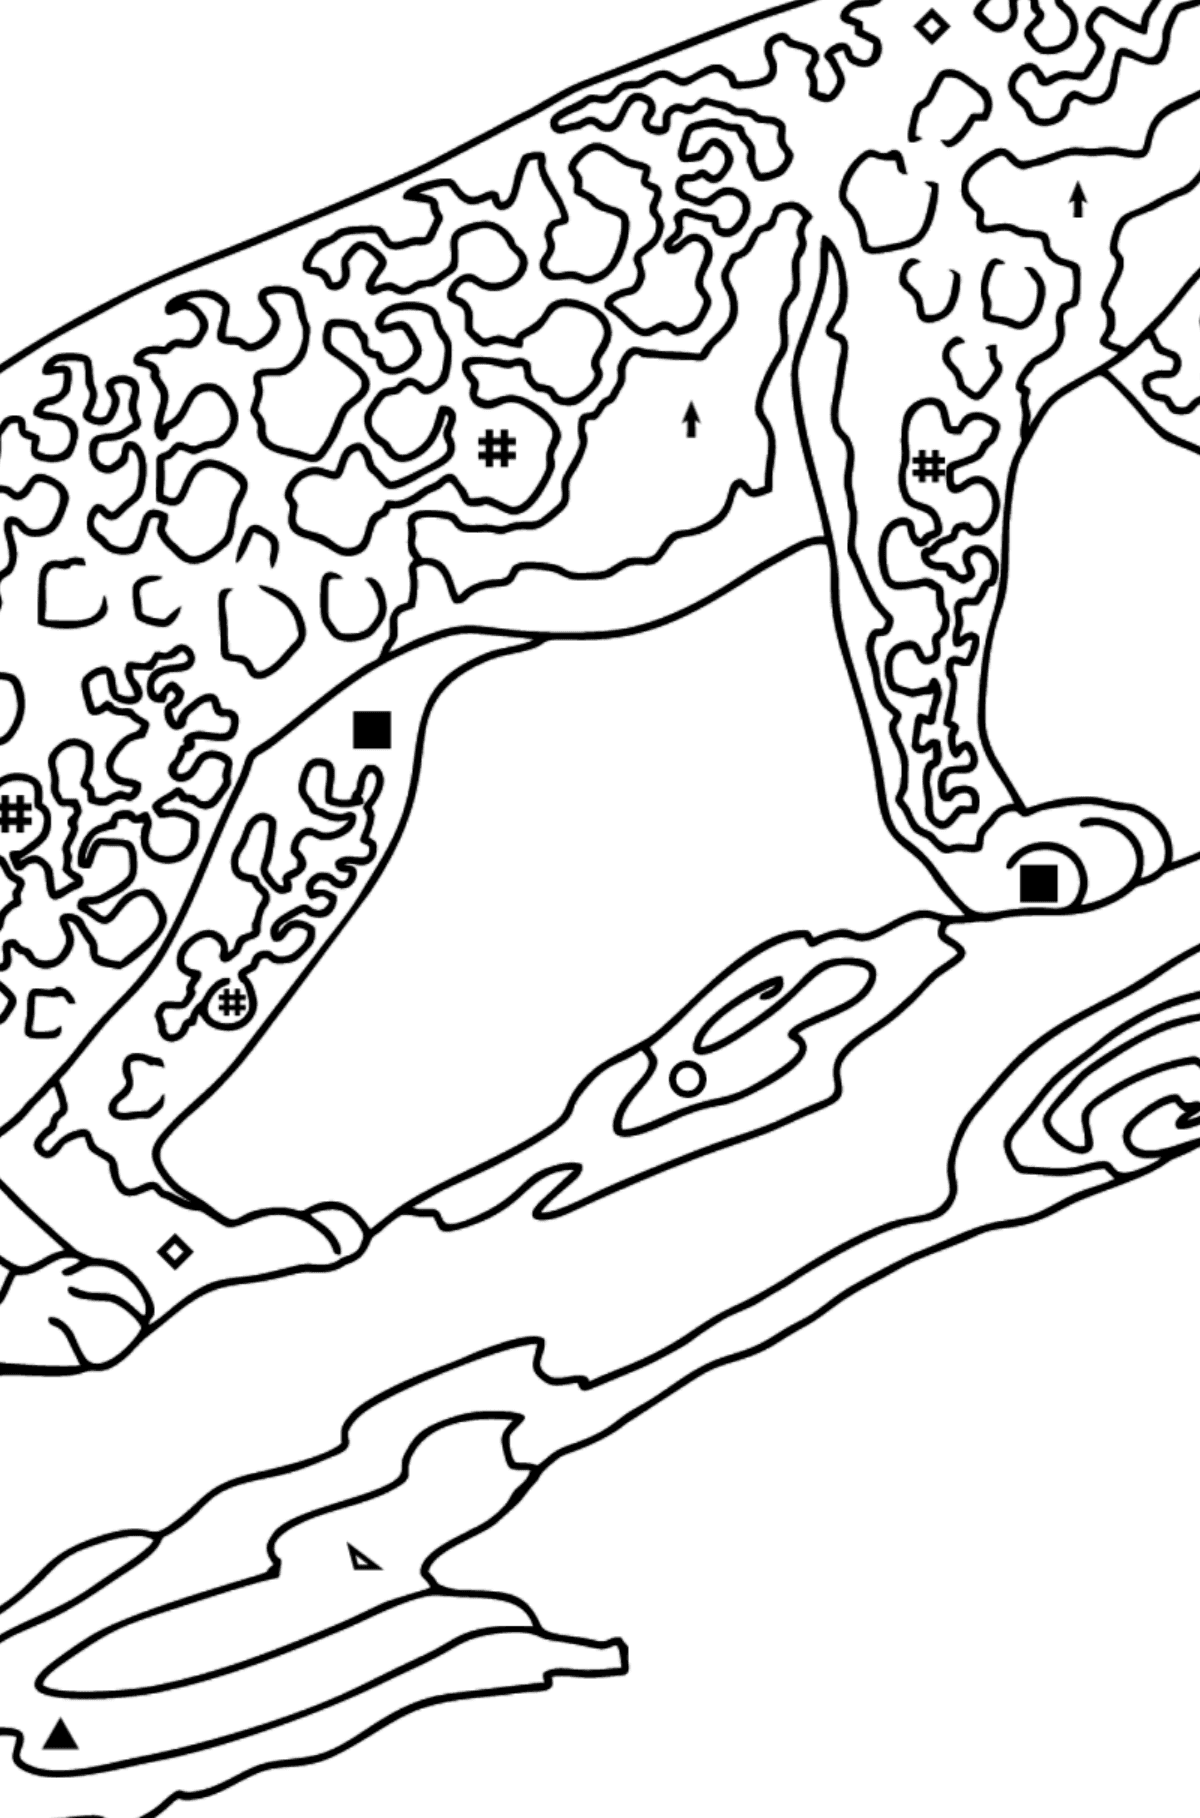 Coloring Page - A Leopard on a Branch - Coloring by Symbols and Geometric Shapes for Kids